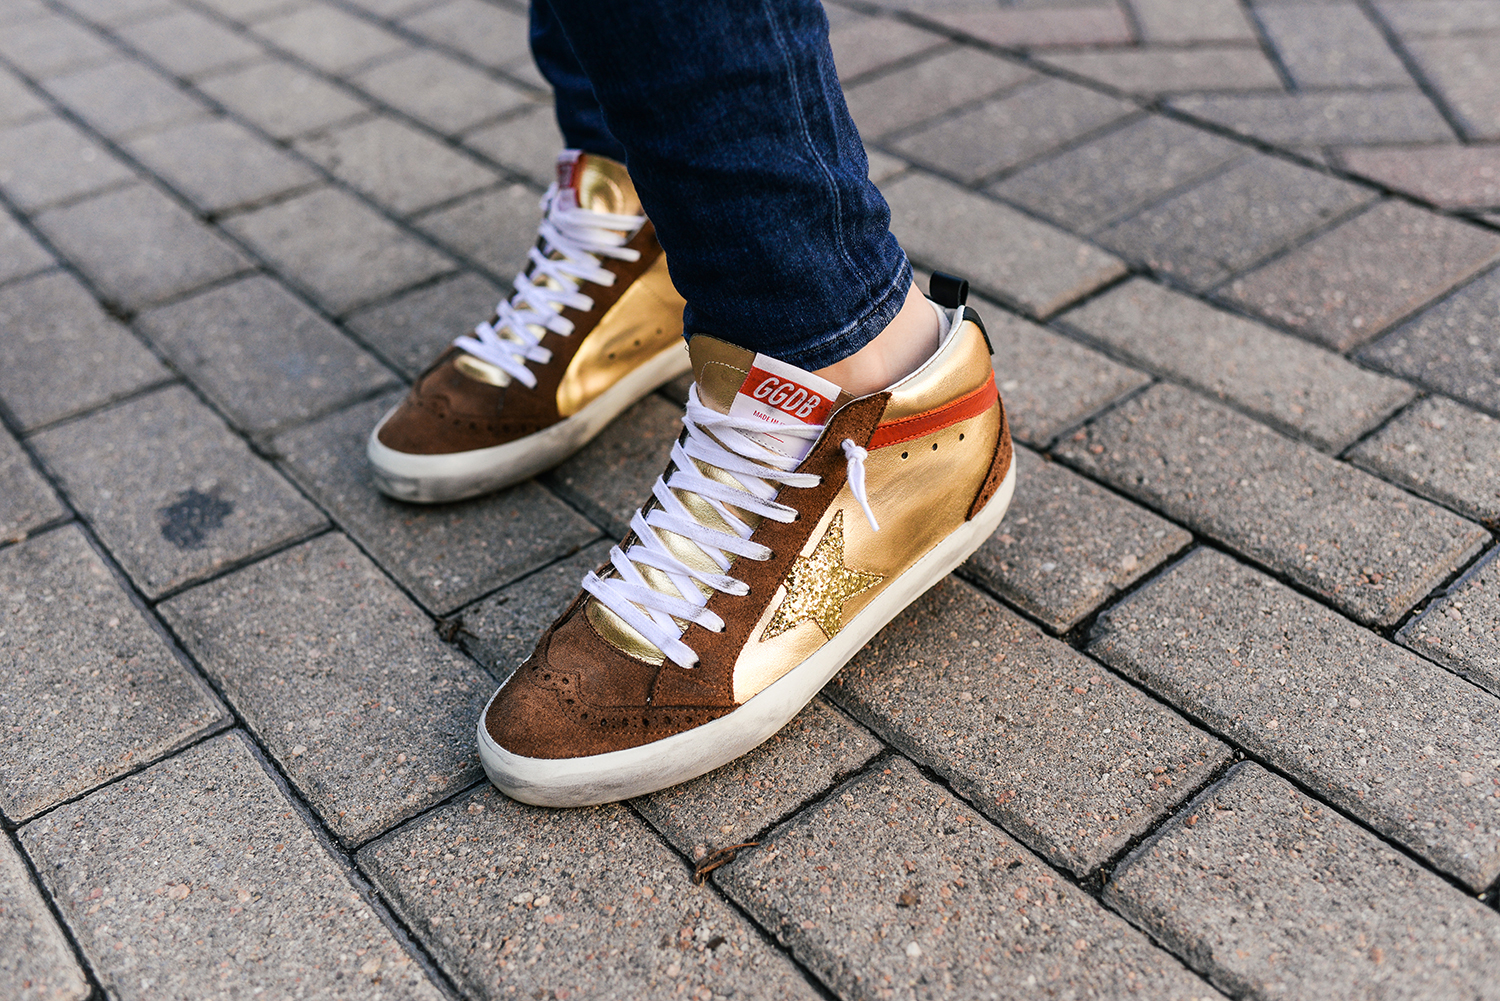 Golden Goose Sneakers - Worth The Splurge?